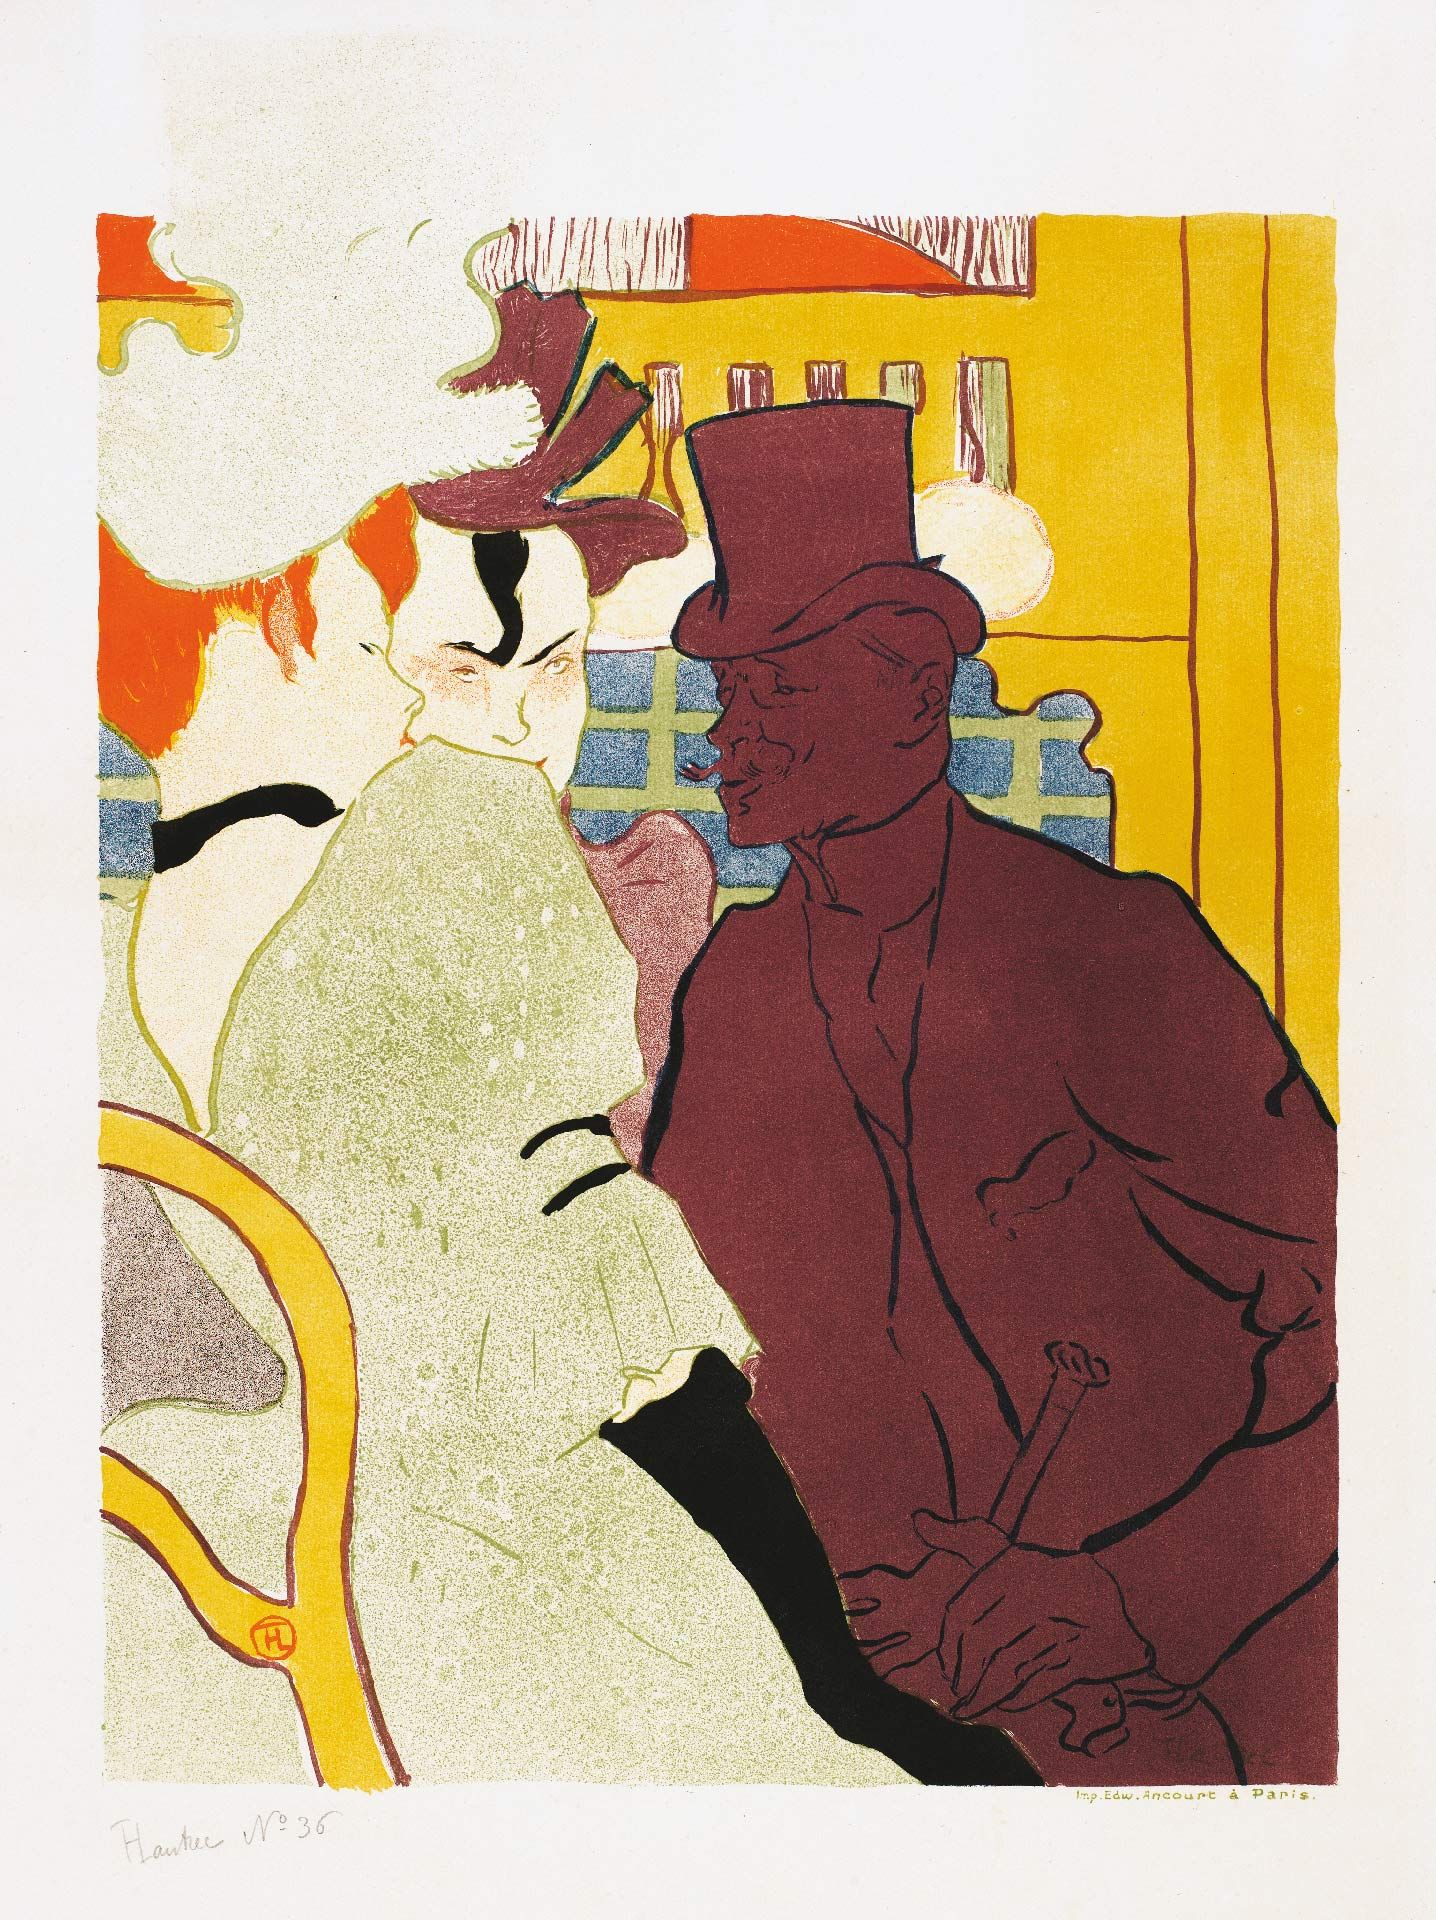 Henri de Toulouse-Lautrec (1864-1901), L'Anglais au Moulin Rouge, 1892, Brush and spatter lithograph, printed in six or seven colours. Key stone printed in olive green, colour stones in aubergine, blue, red, yellow and black on wove paper, State II/II, 53.4 x 37.5 cm. Private collection. Photo Peter Schälchi